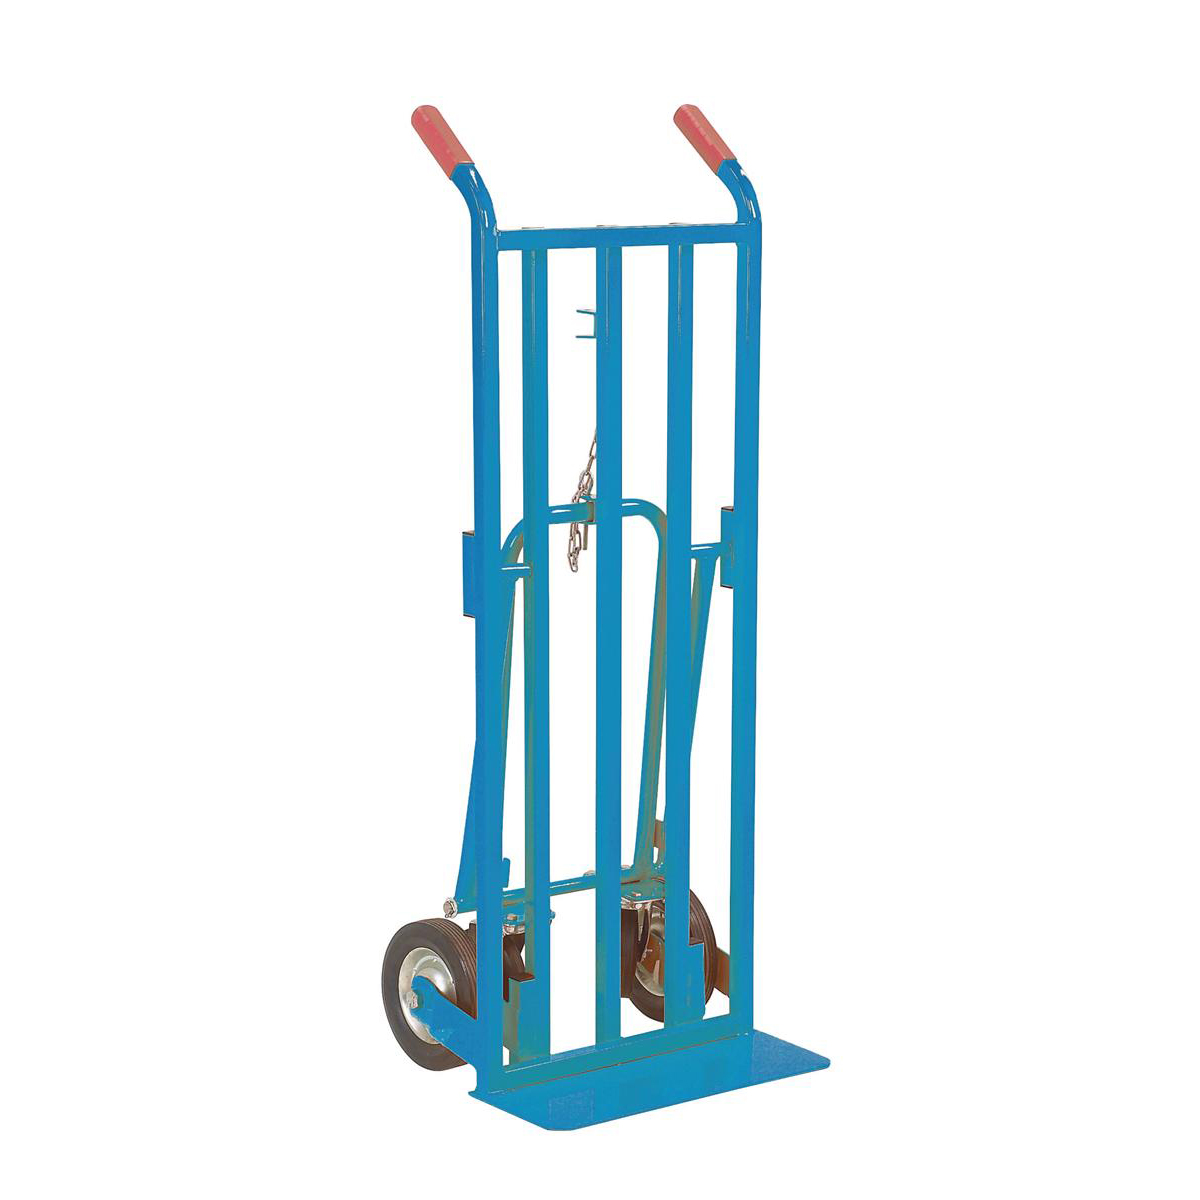 Trolleys Hand Truck 3 Position Steel Frame Double Rear Castors Capacity 200kg Blue